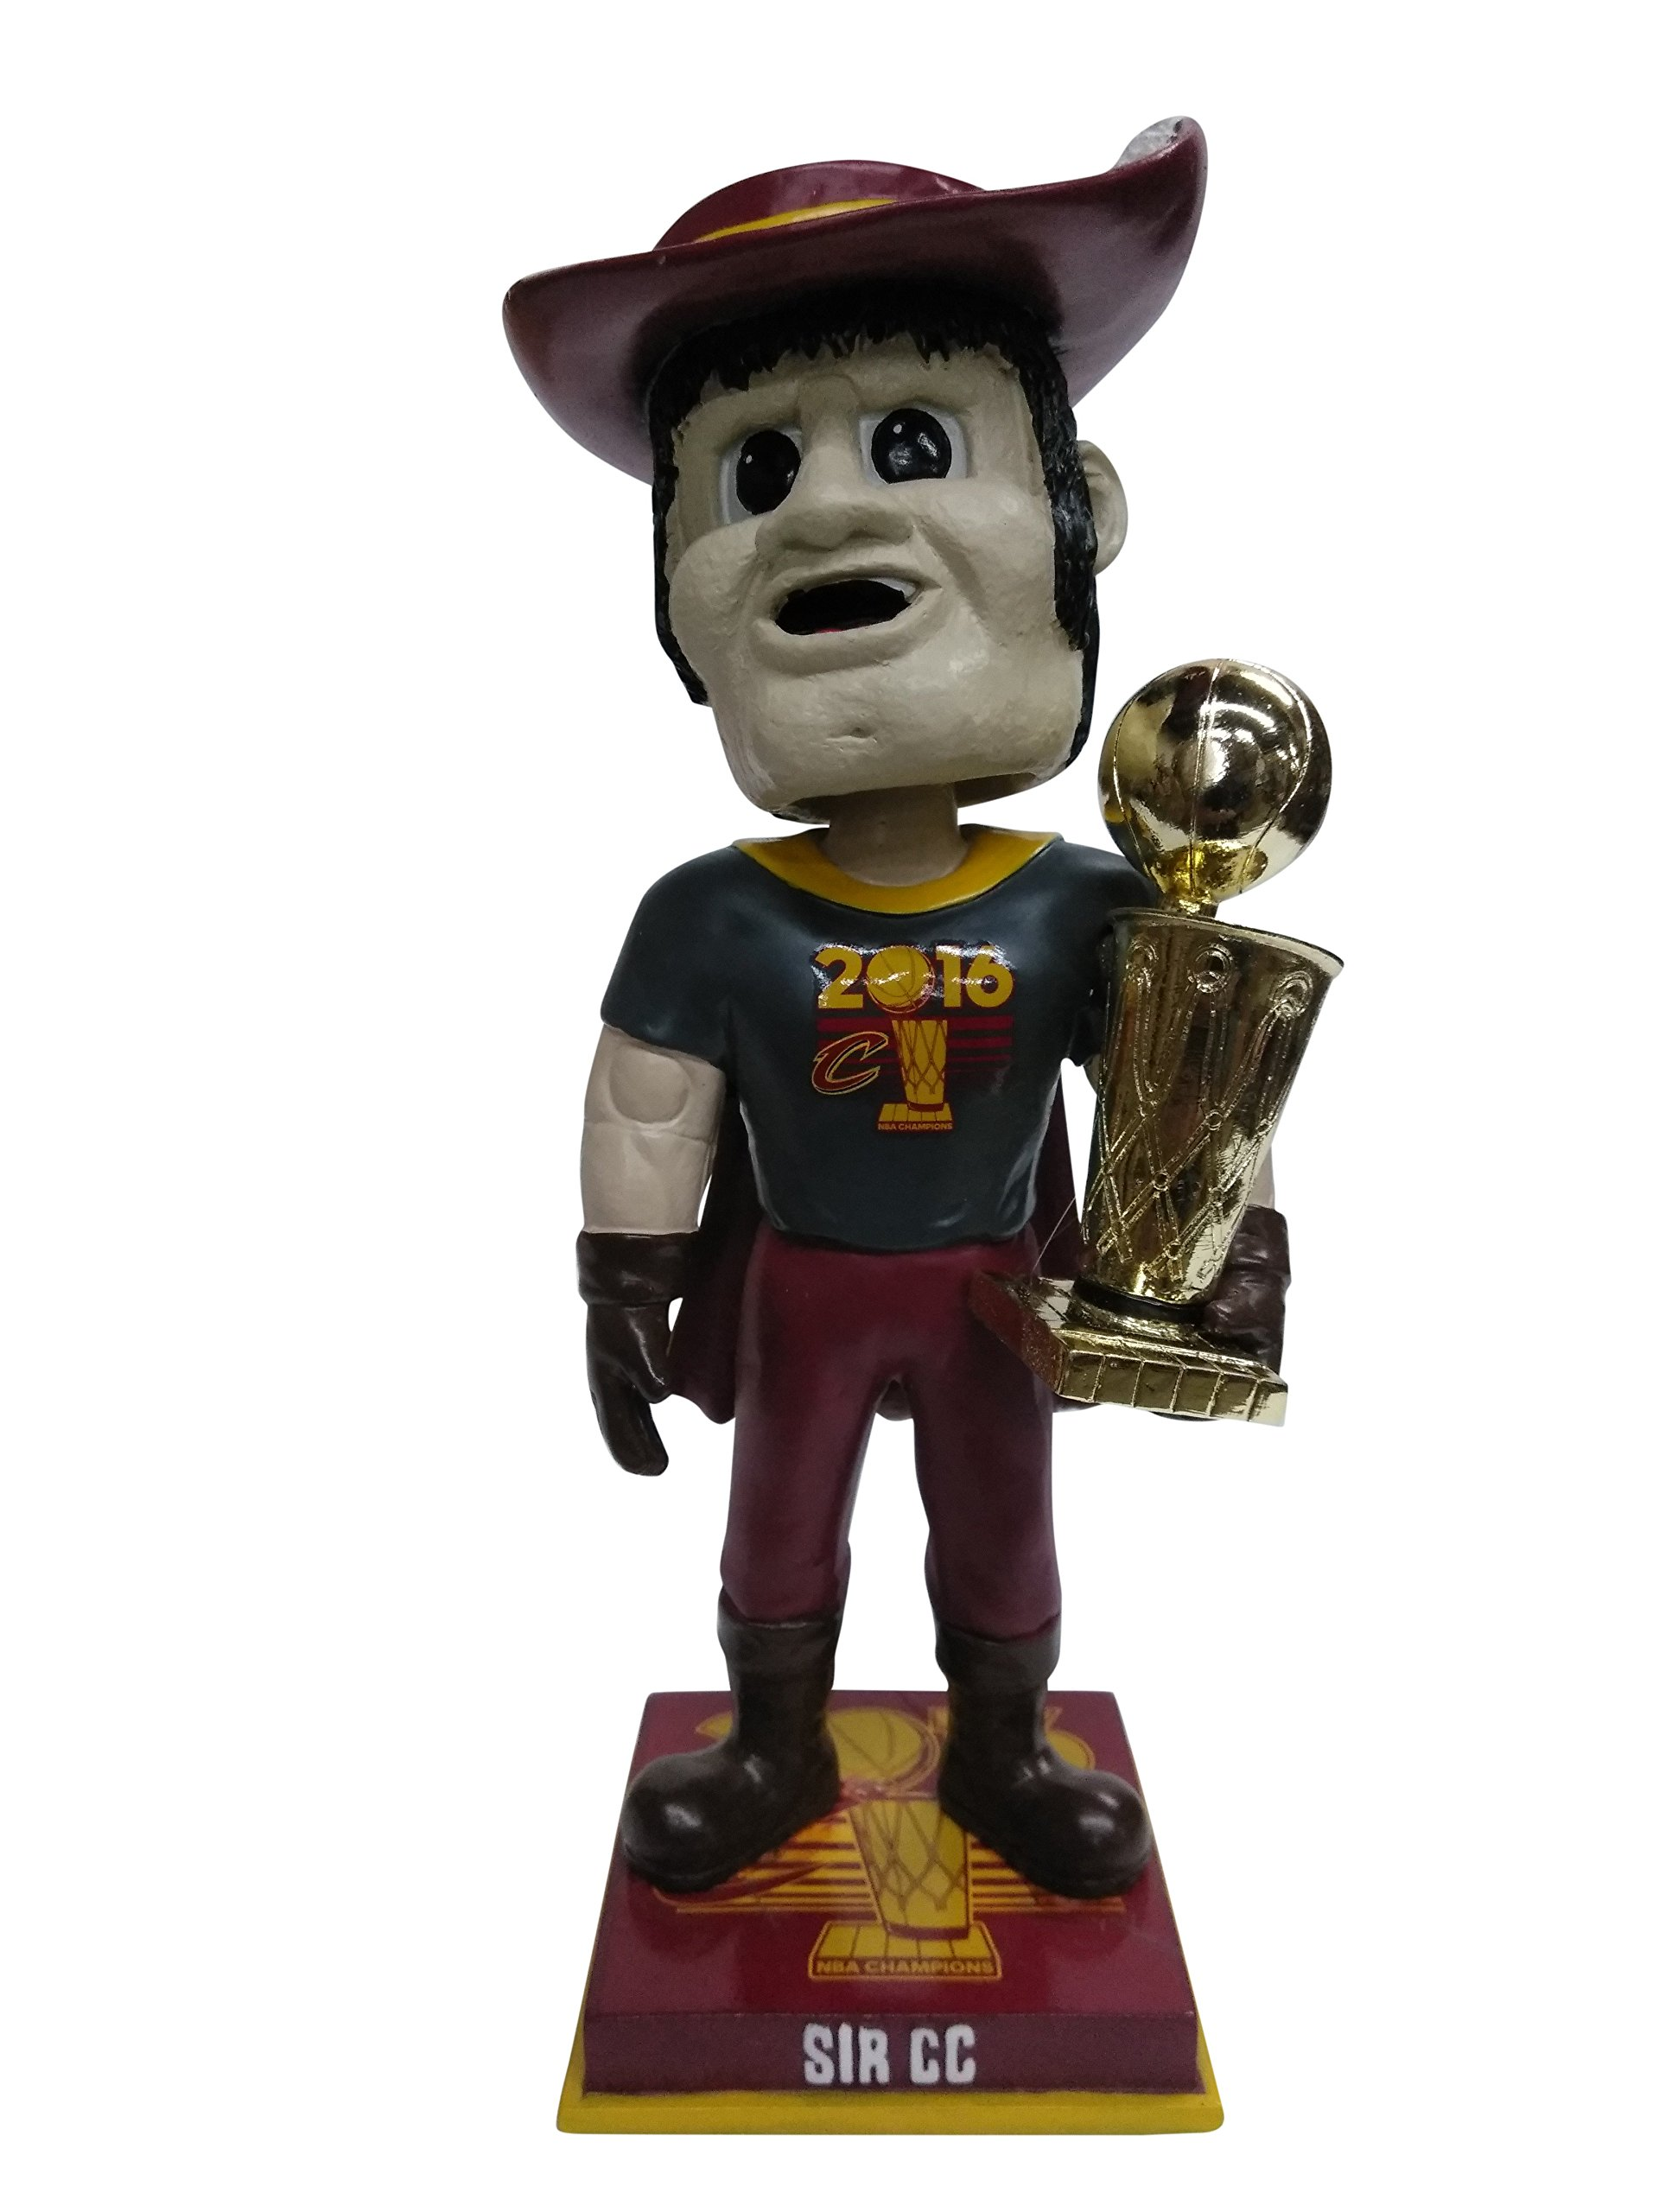 Sir CC Cleveland Cavaliers 2016 NBA Champions Mascot Special Edition Championship T-Shirt Bobblehead Bobble head - Individually Numbered to 216